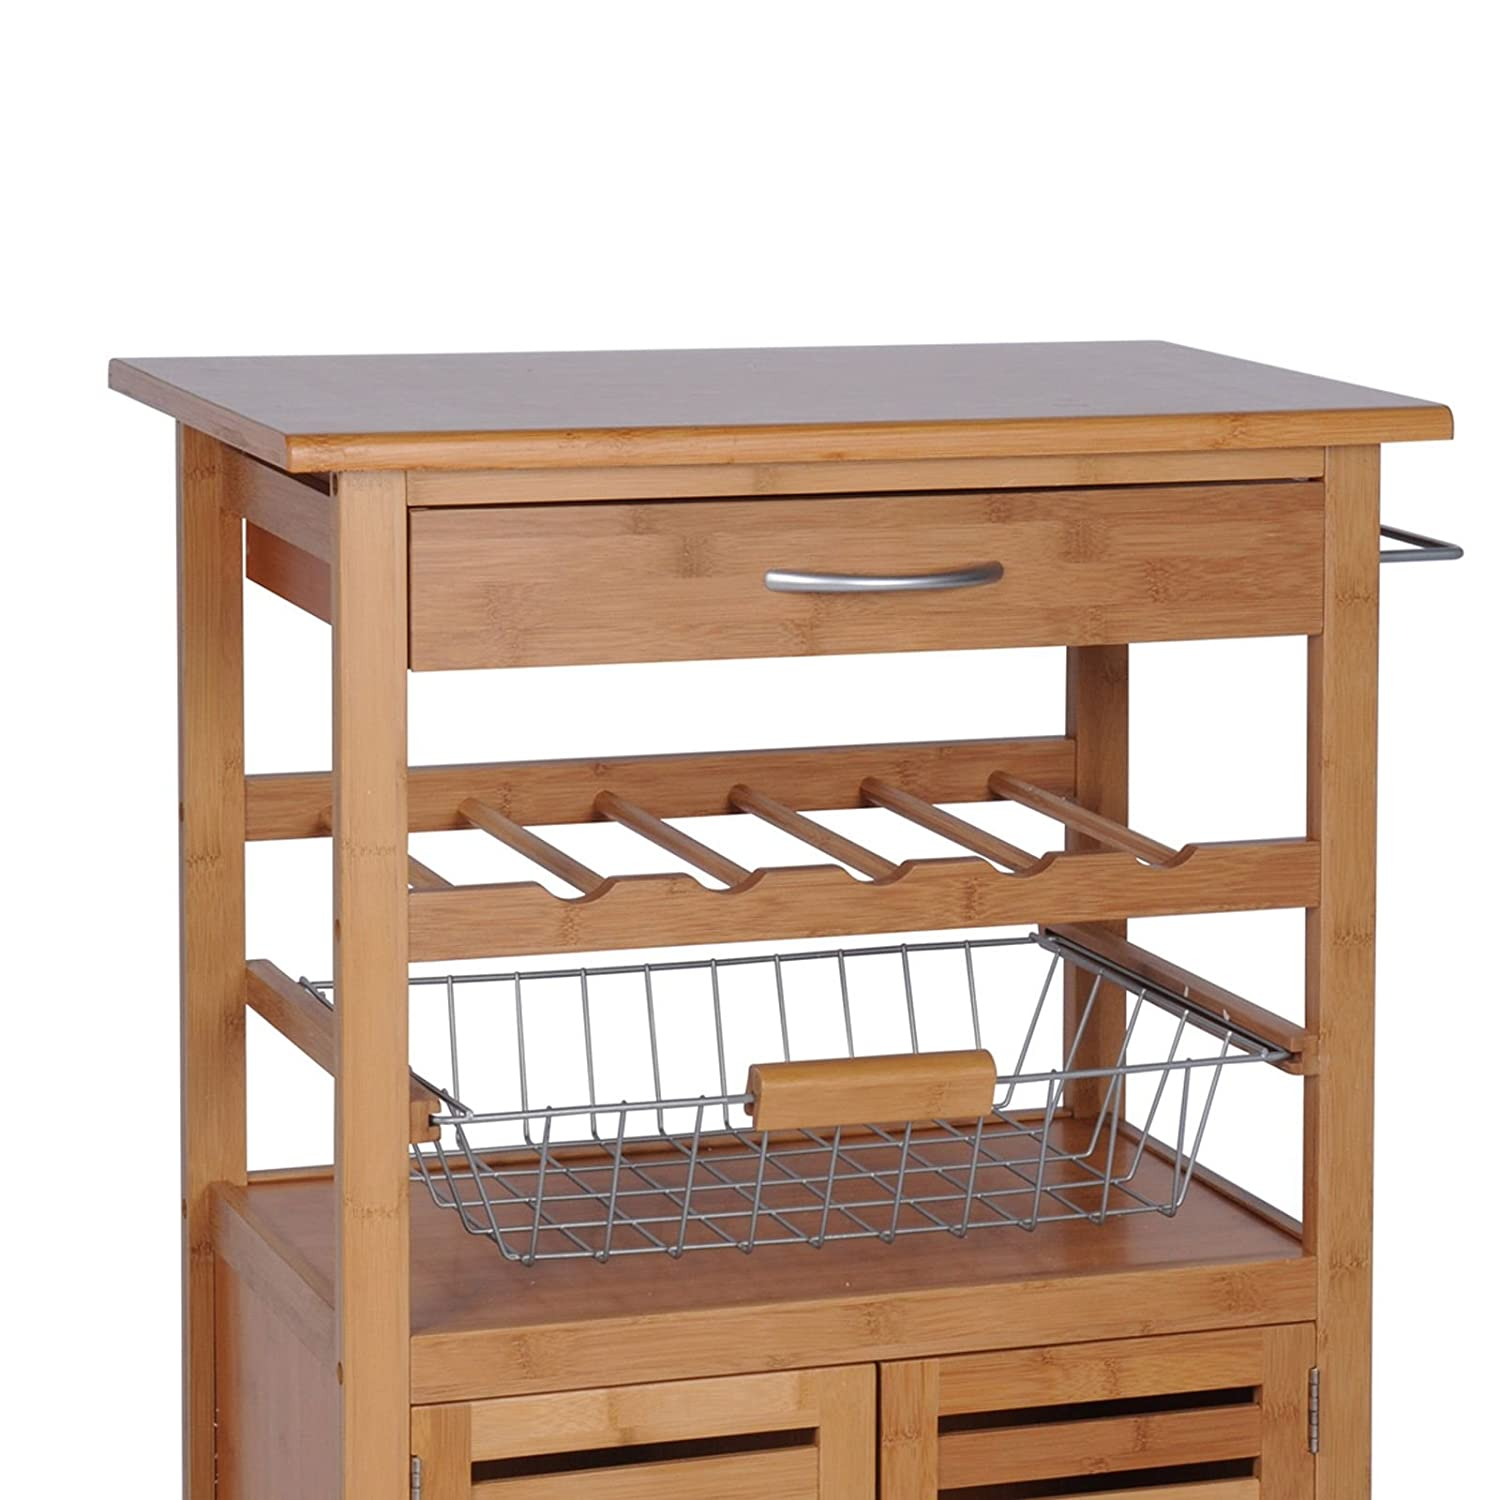 Quantio Exclusive Kitchen Trolley Made Bamboo Wine Rack,Fruit Basket Drawer